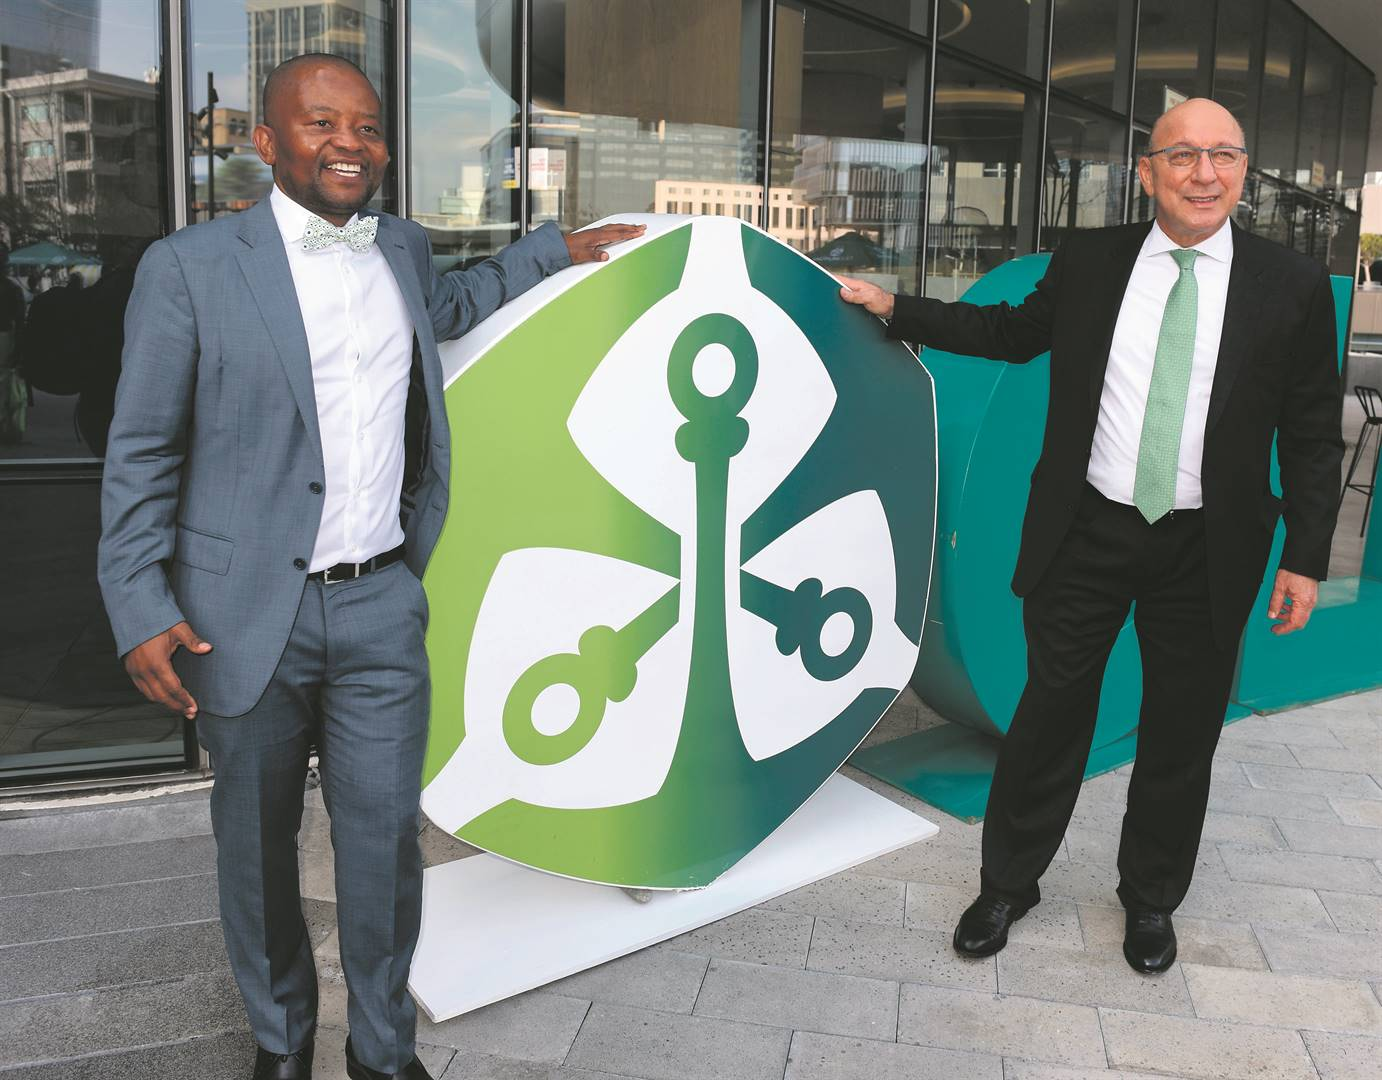 In this photo taken in June last year, Old Mutual Holdings chief executive officer Peter Moyo and Old Mutual chairperson Trevor Manuel were still on good terms            Picture: Freddy Mavunda / Financial Mail